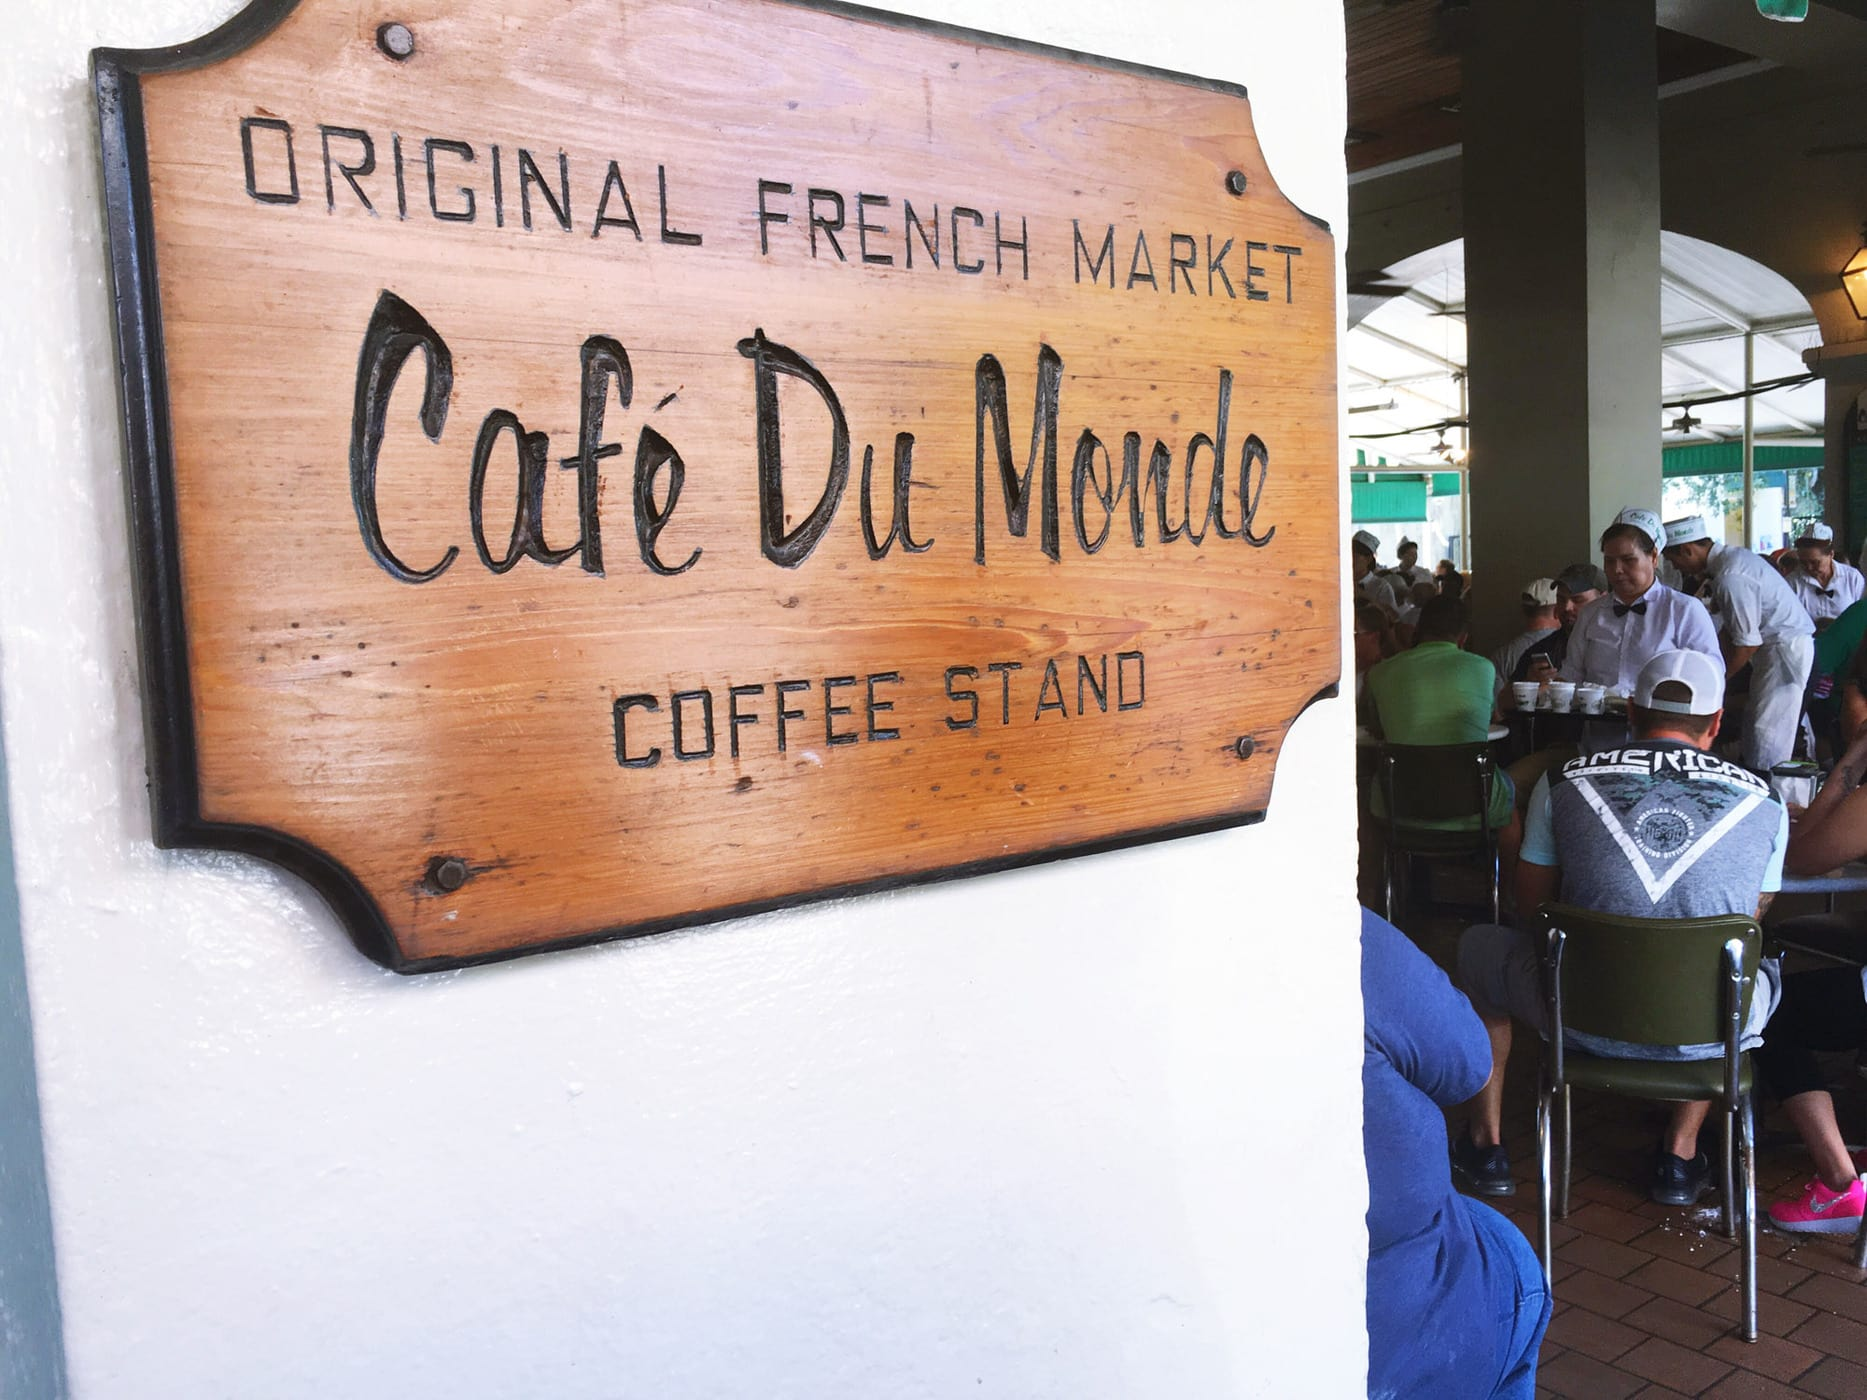 Life List #115: Eat beignets from Café Du Monde in New Orleans.